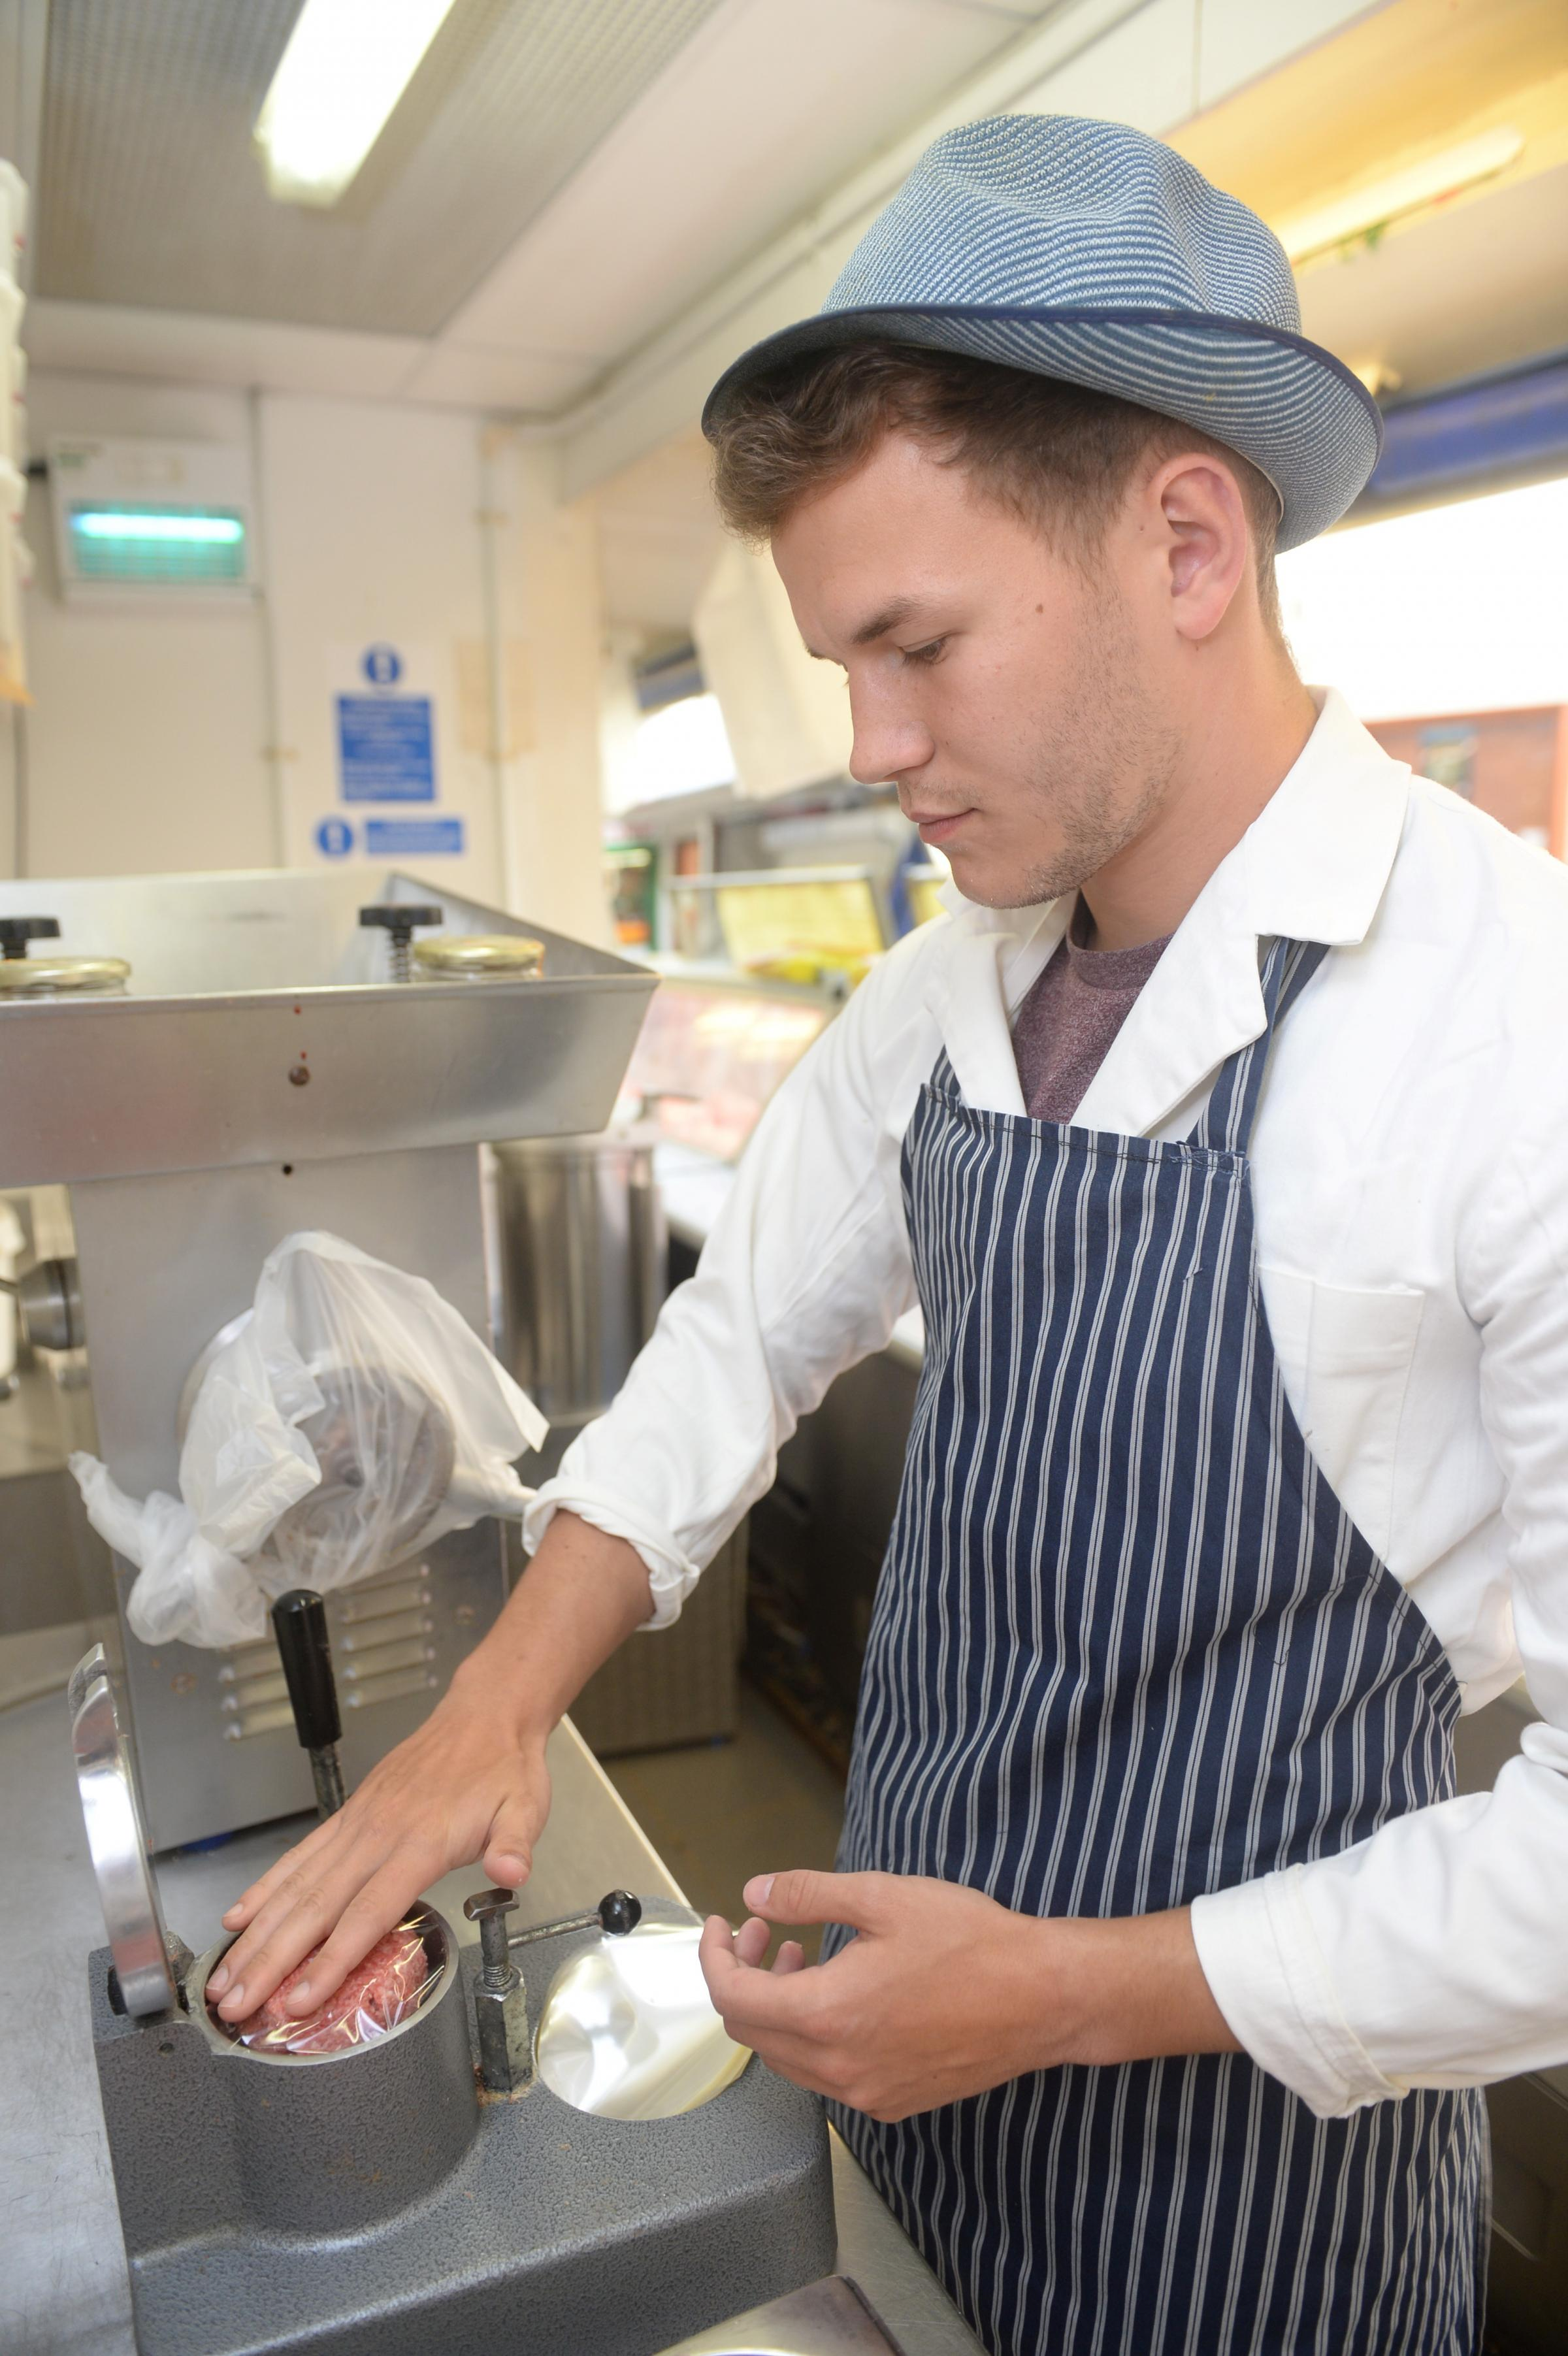 WORK EXPERIENCE: Our man becomes a butcher